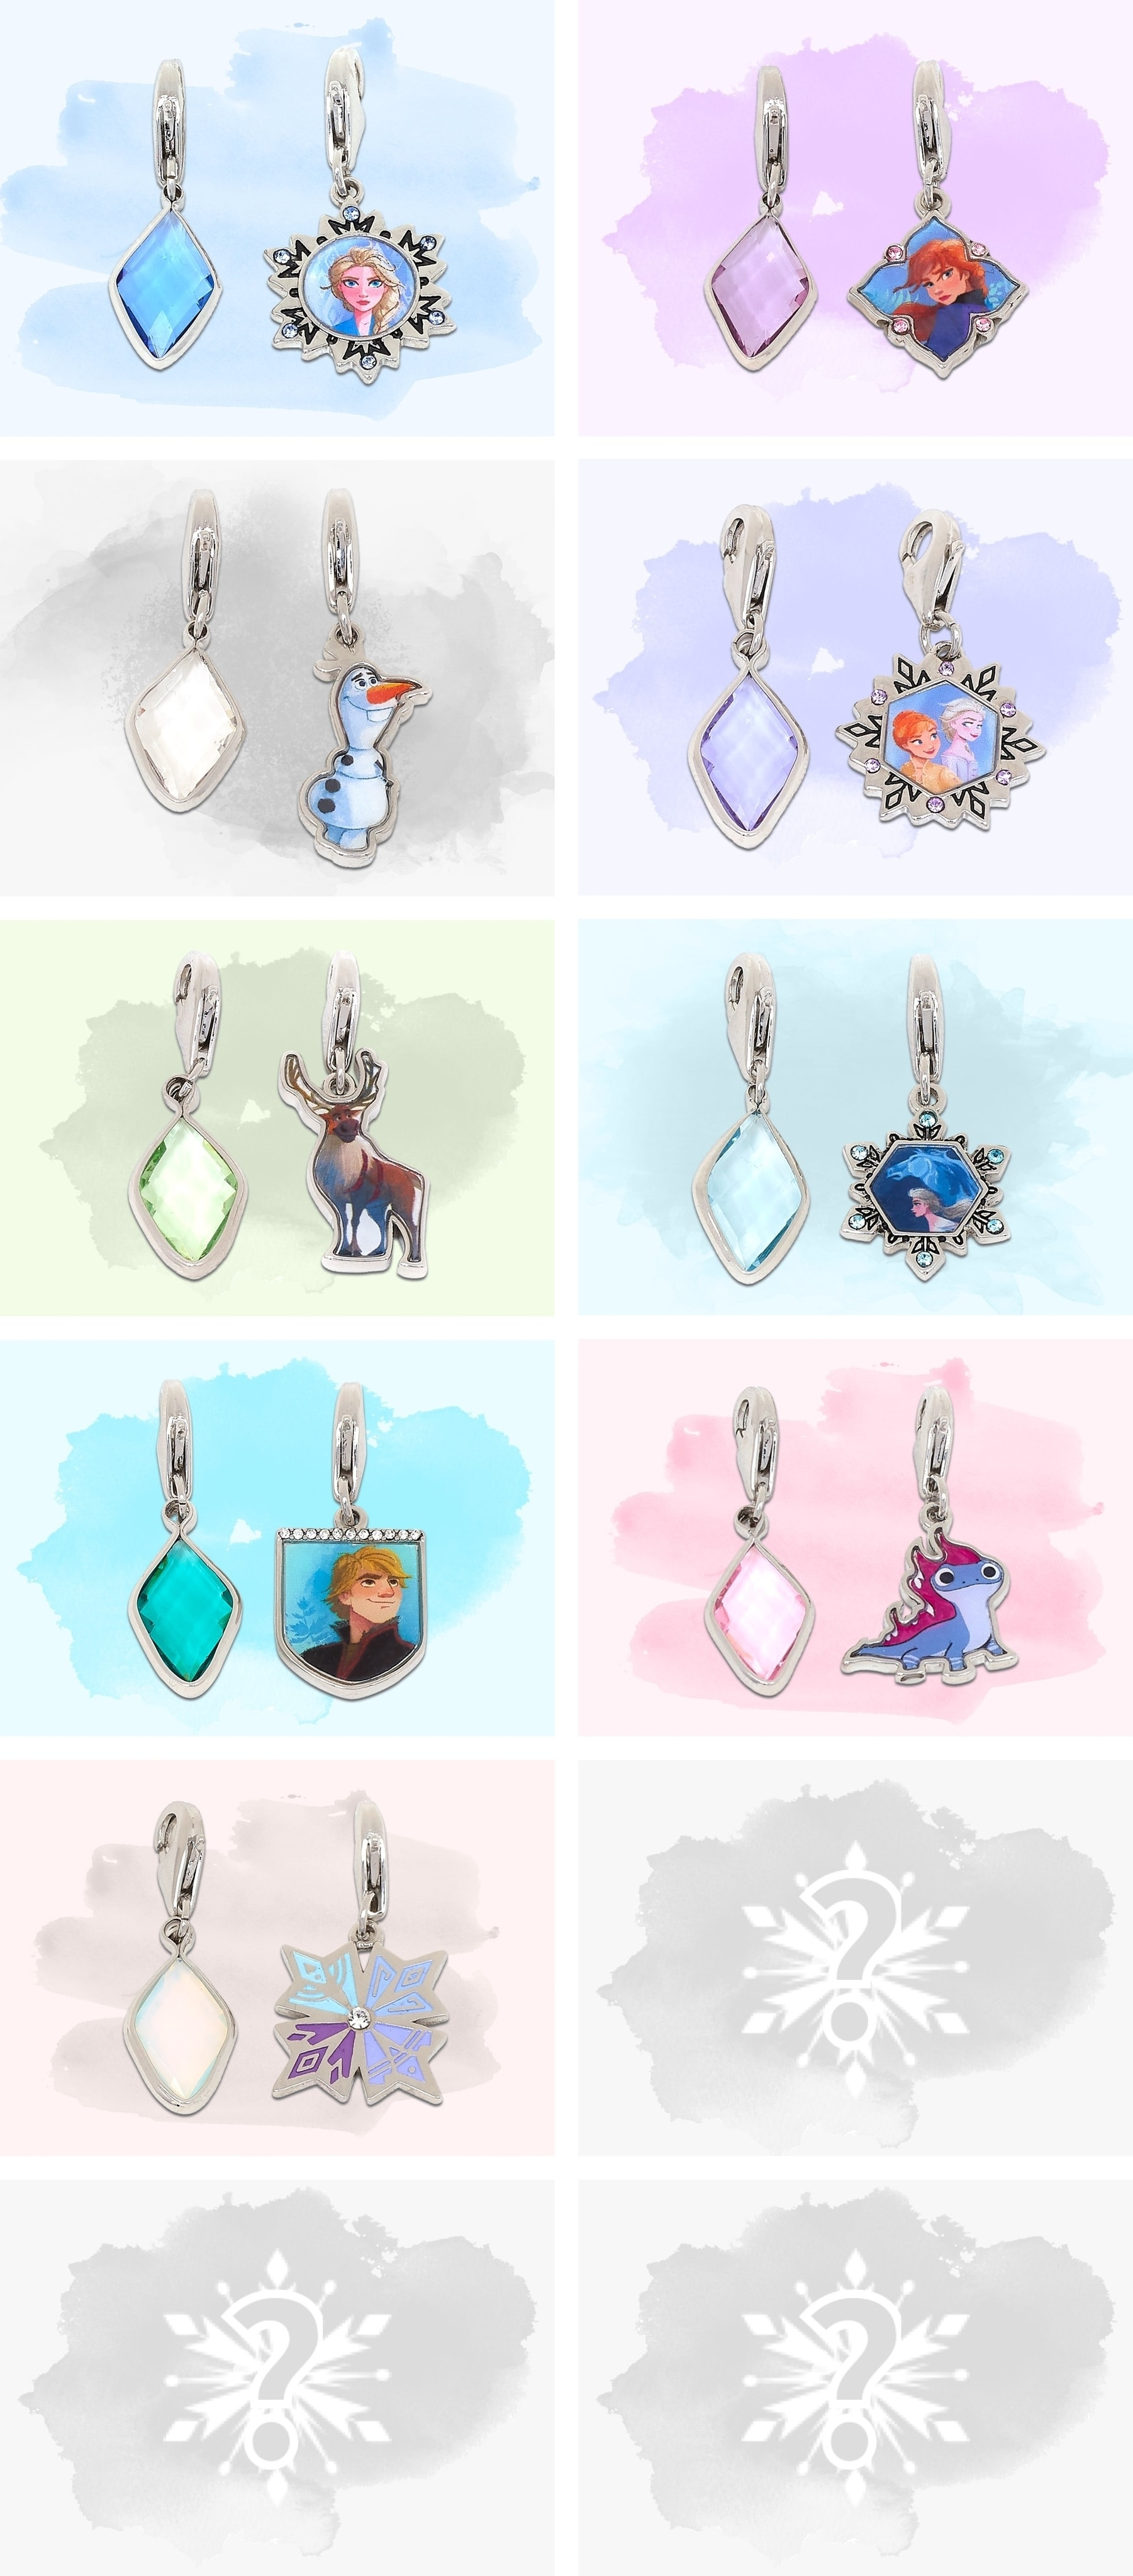 The complete charm collection inspired by Frozen 2 characters